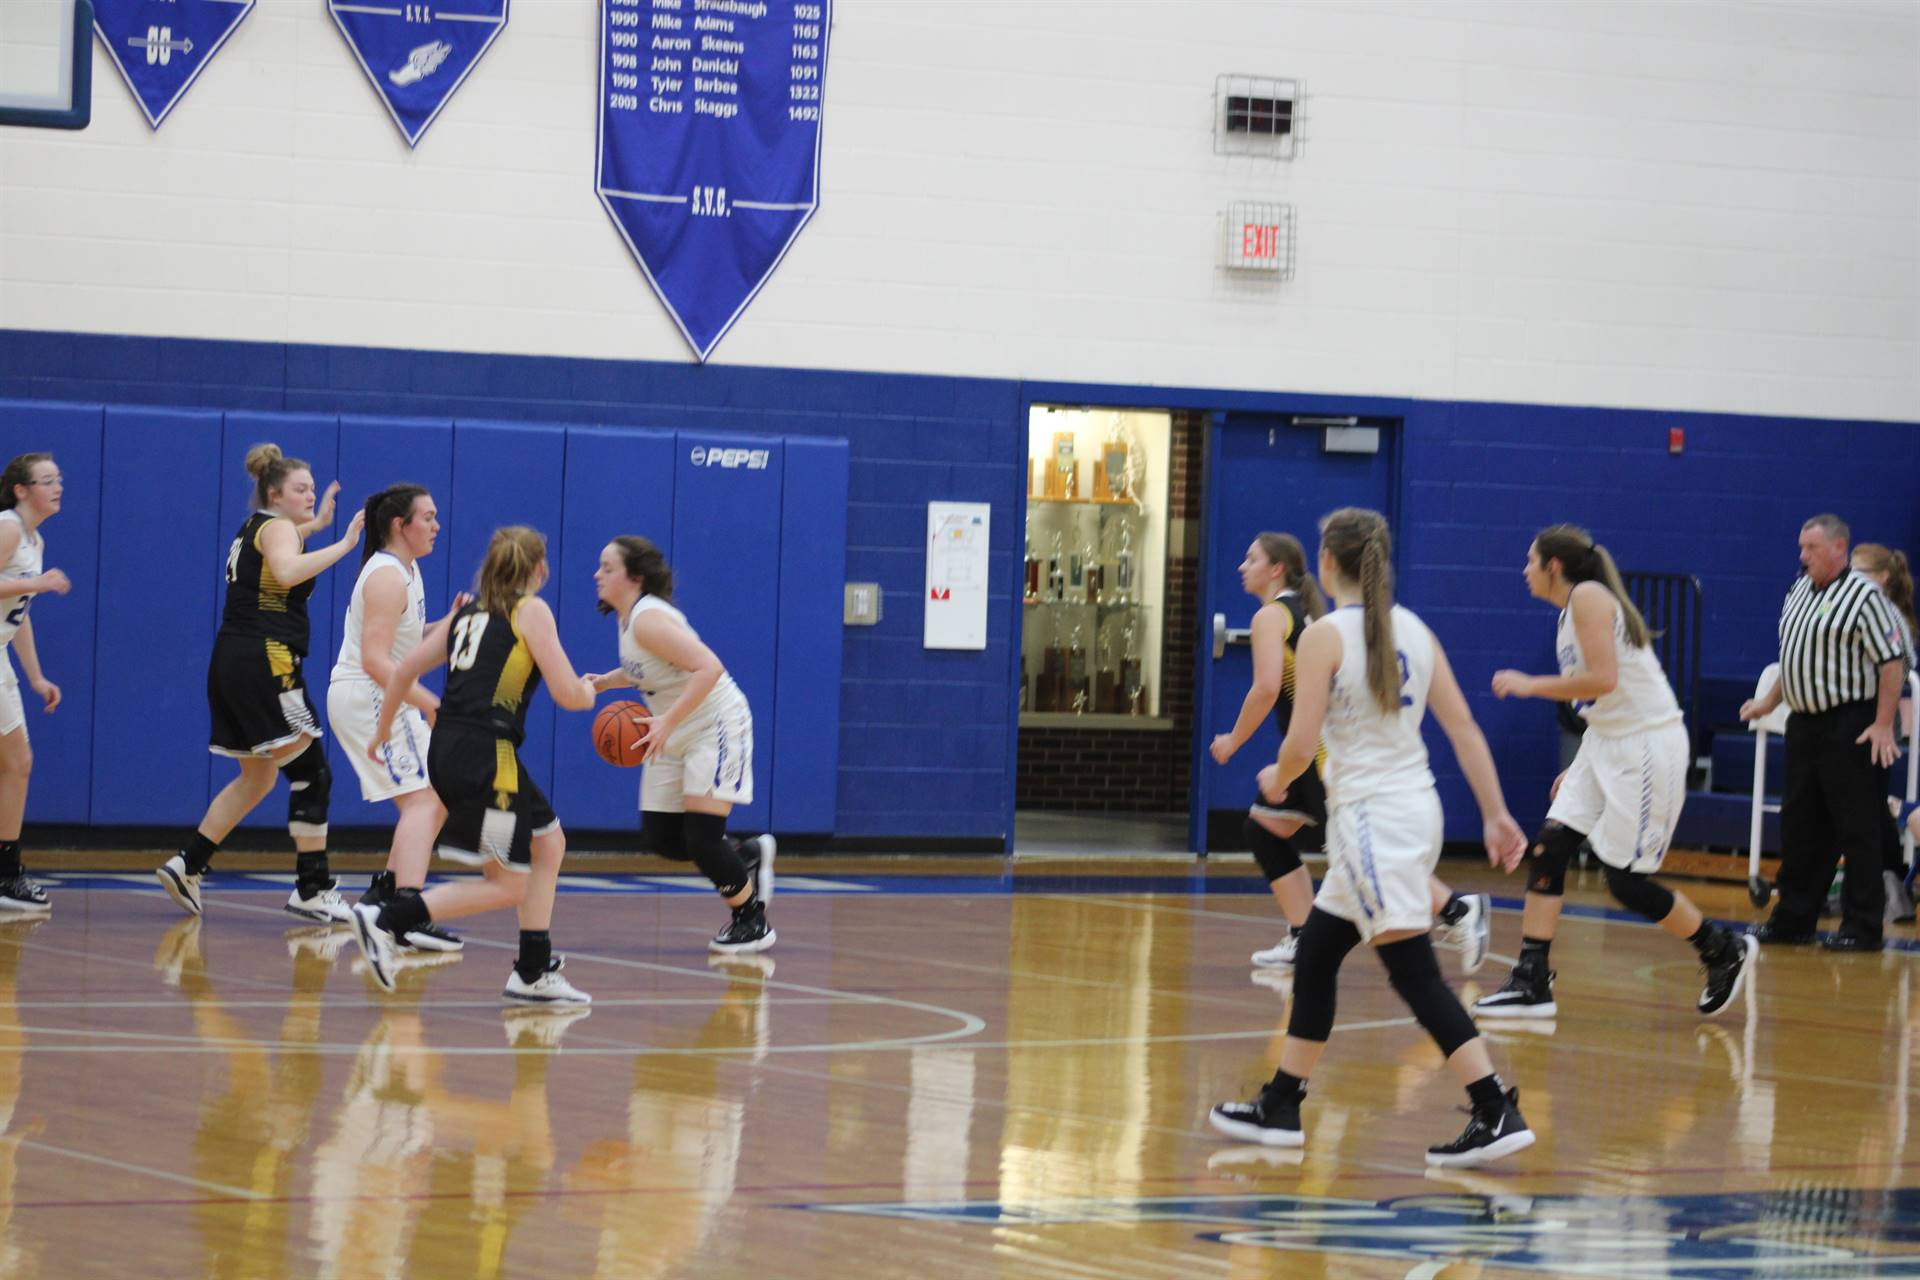 SE Girls vs Paint Valley 2